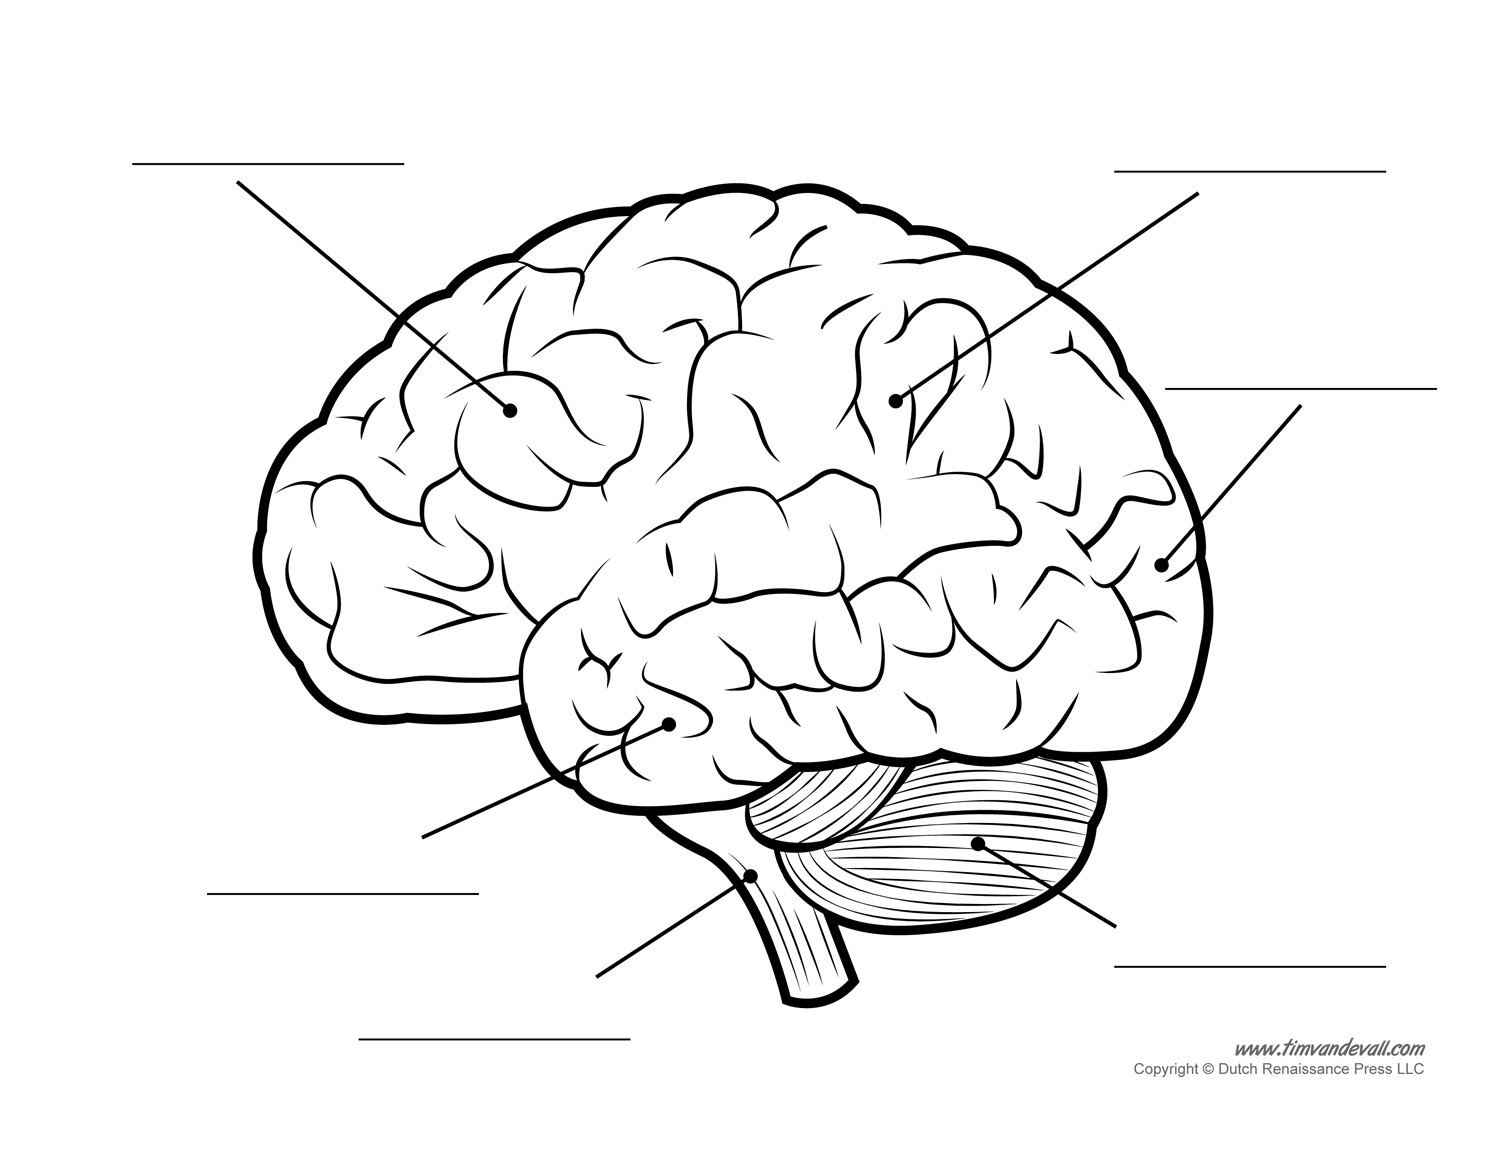 Coloring Pages ~ Staggering Brain Anatomying Pages Page The Book